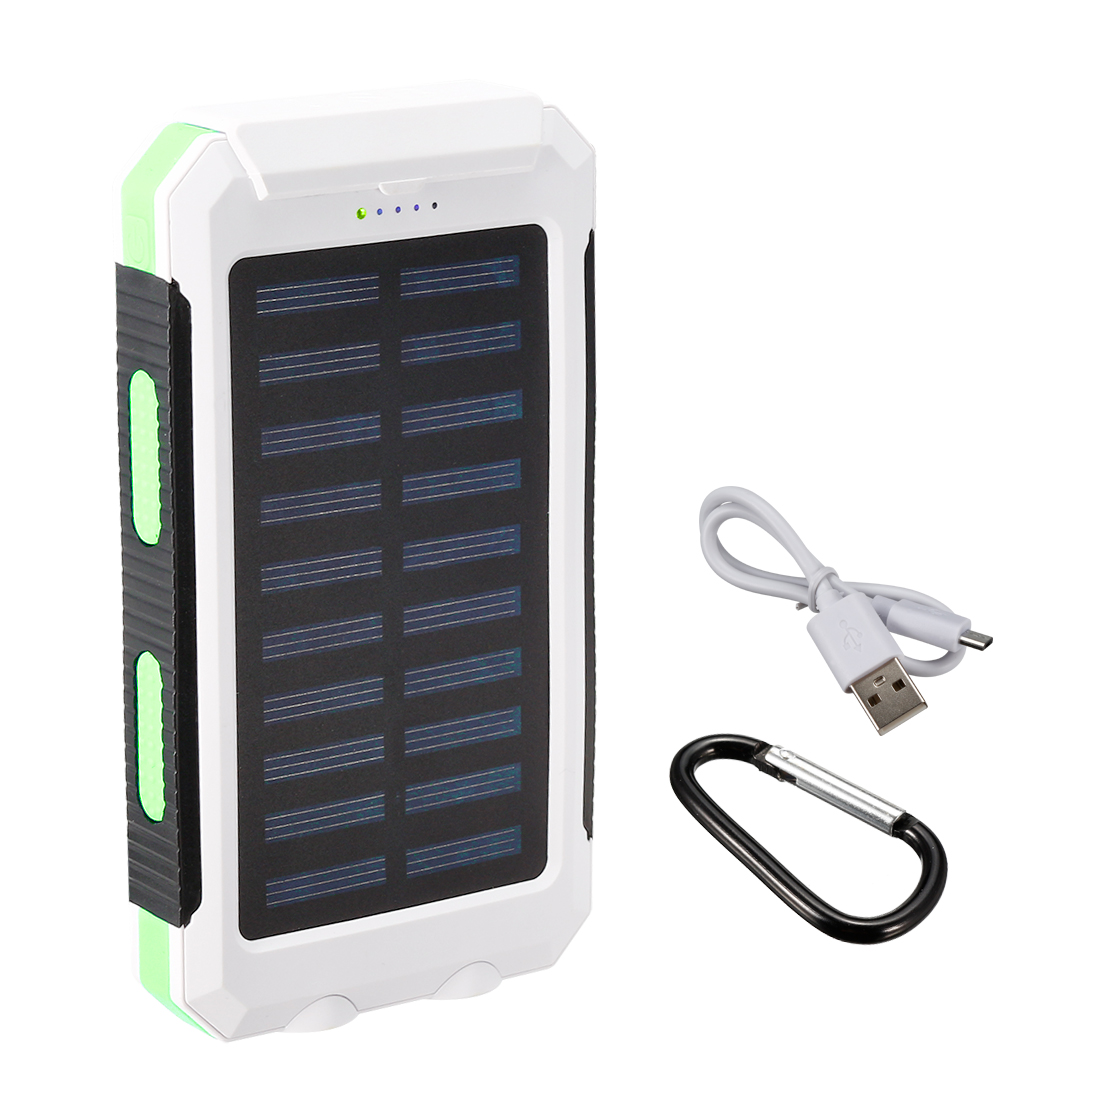 1.5W 8000mAh Solar Charger Dual USB Power Bank Phone Battery Flashlight Green